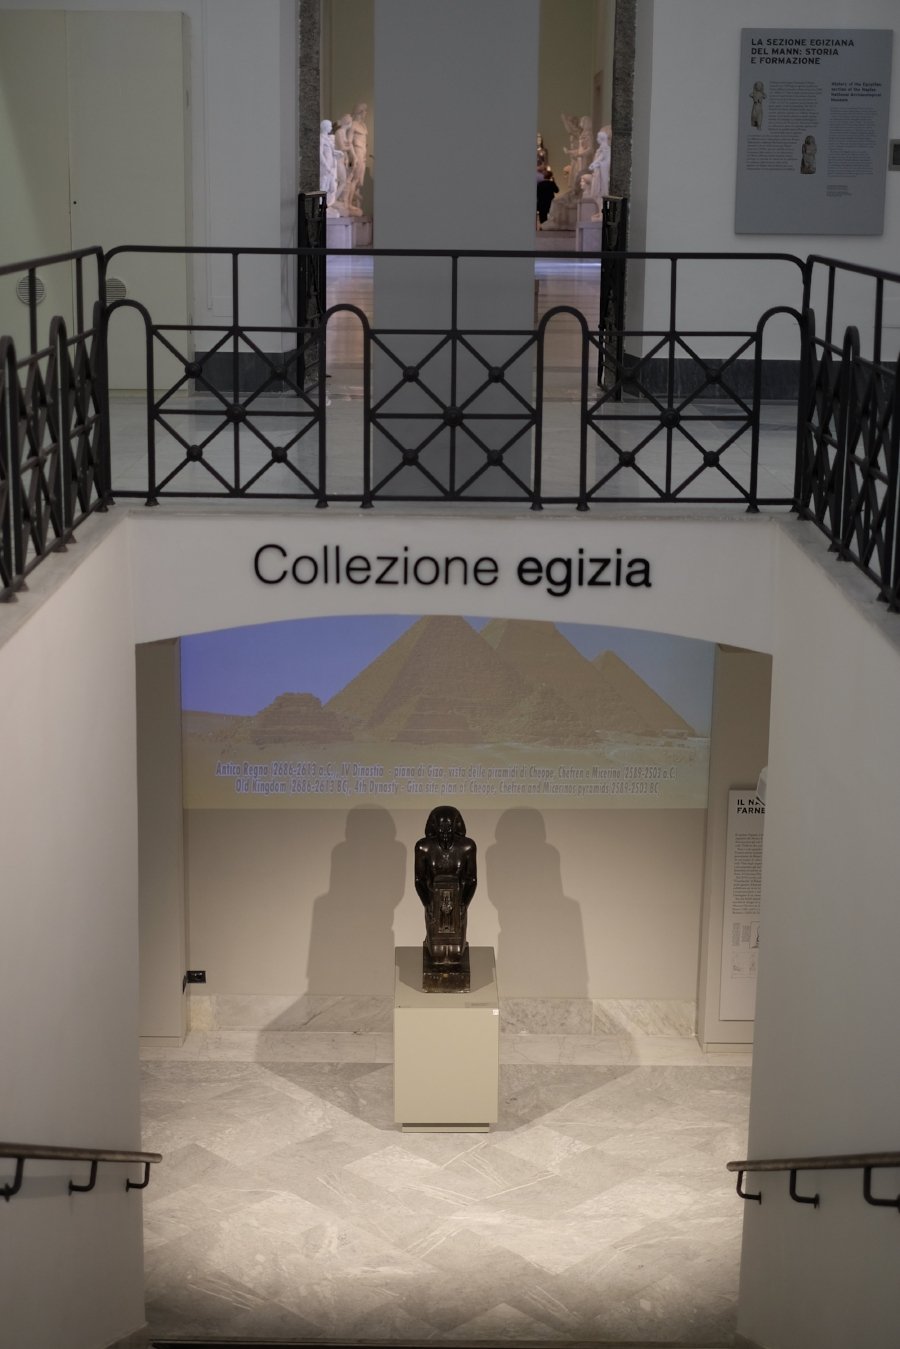 Entrance of the Egyptian Collection at the level -1.